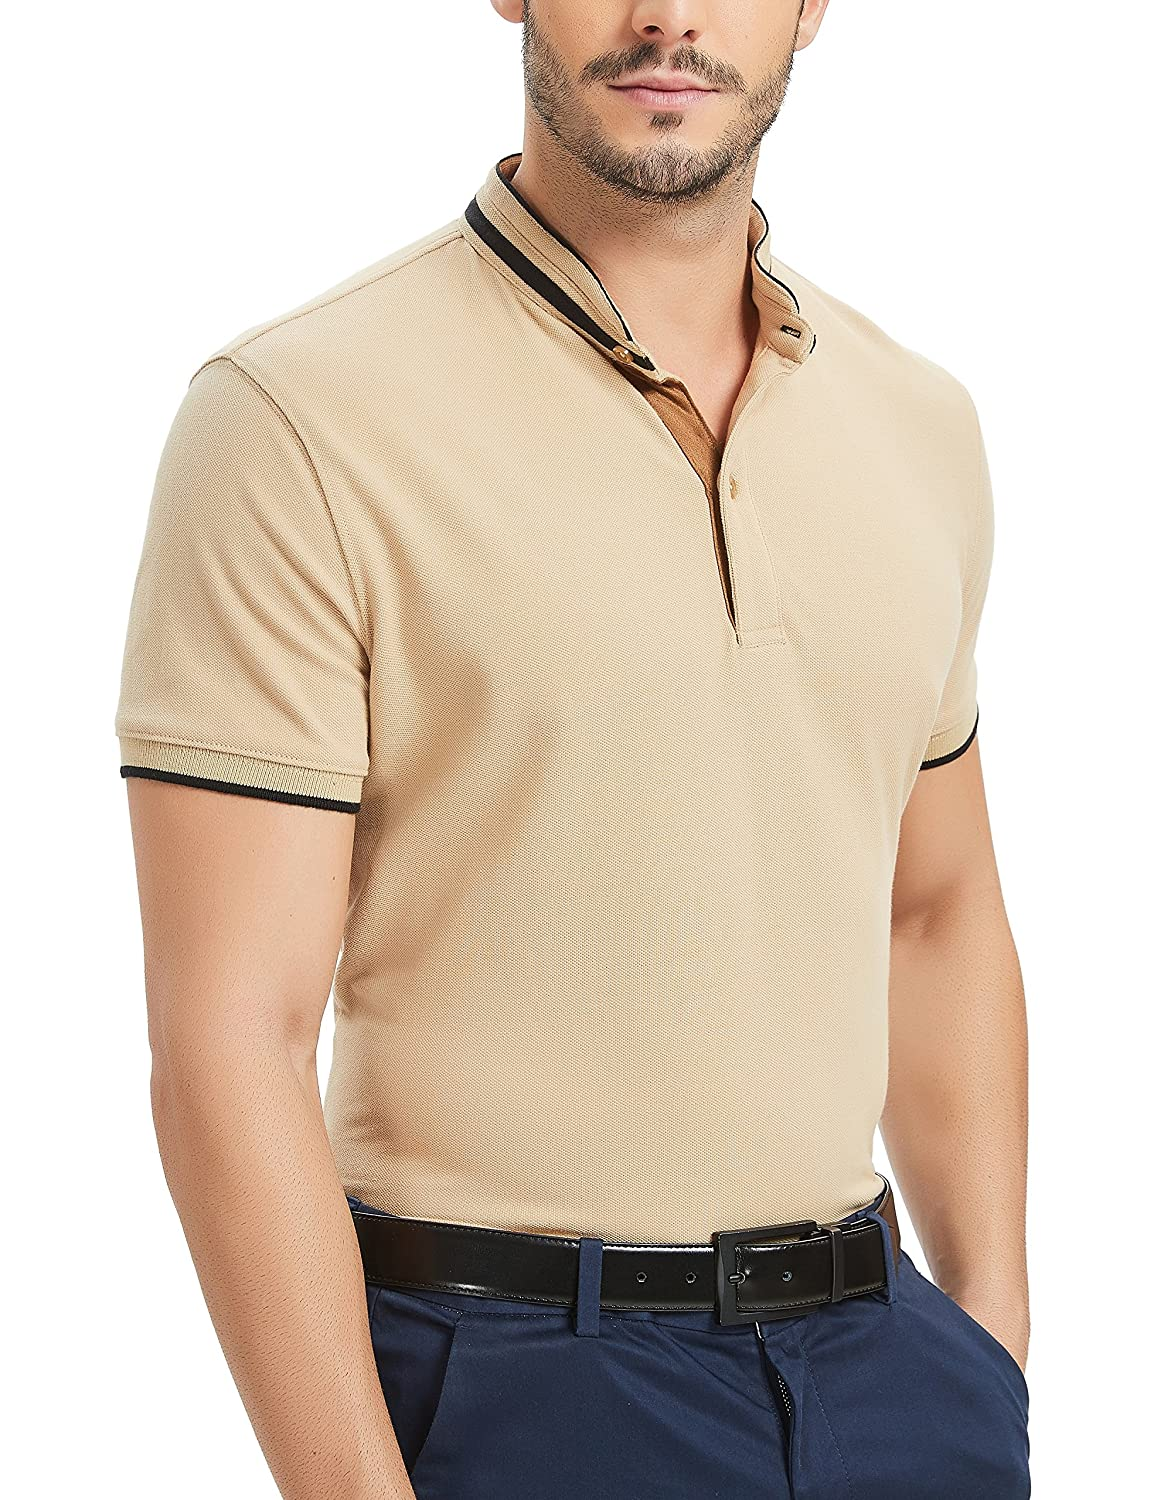 Navifalcon Mens Short Sleeve Classic Fit Cotton Pique Polo Shirt